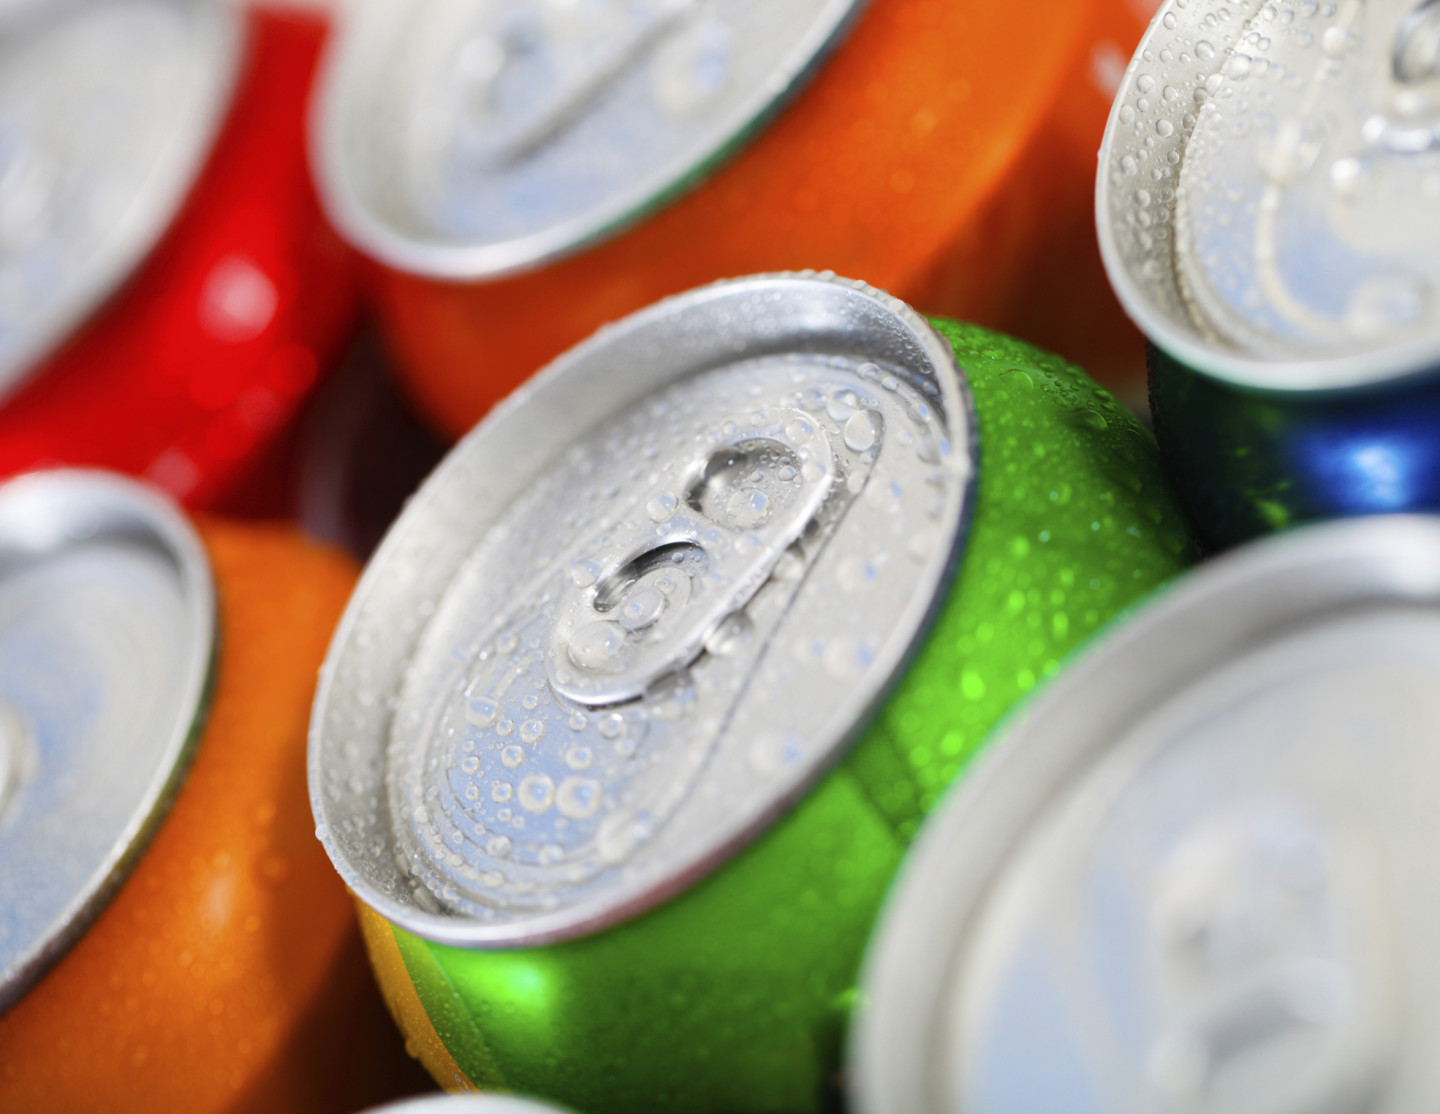 Berkeley's Soda Tax Appears to Cut Consumption of Sugary Drinks